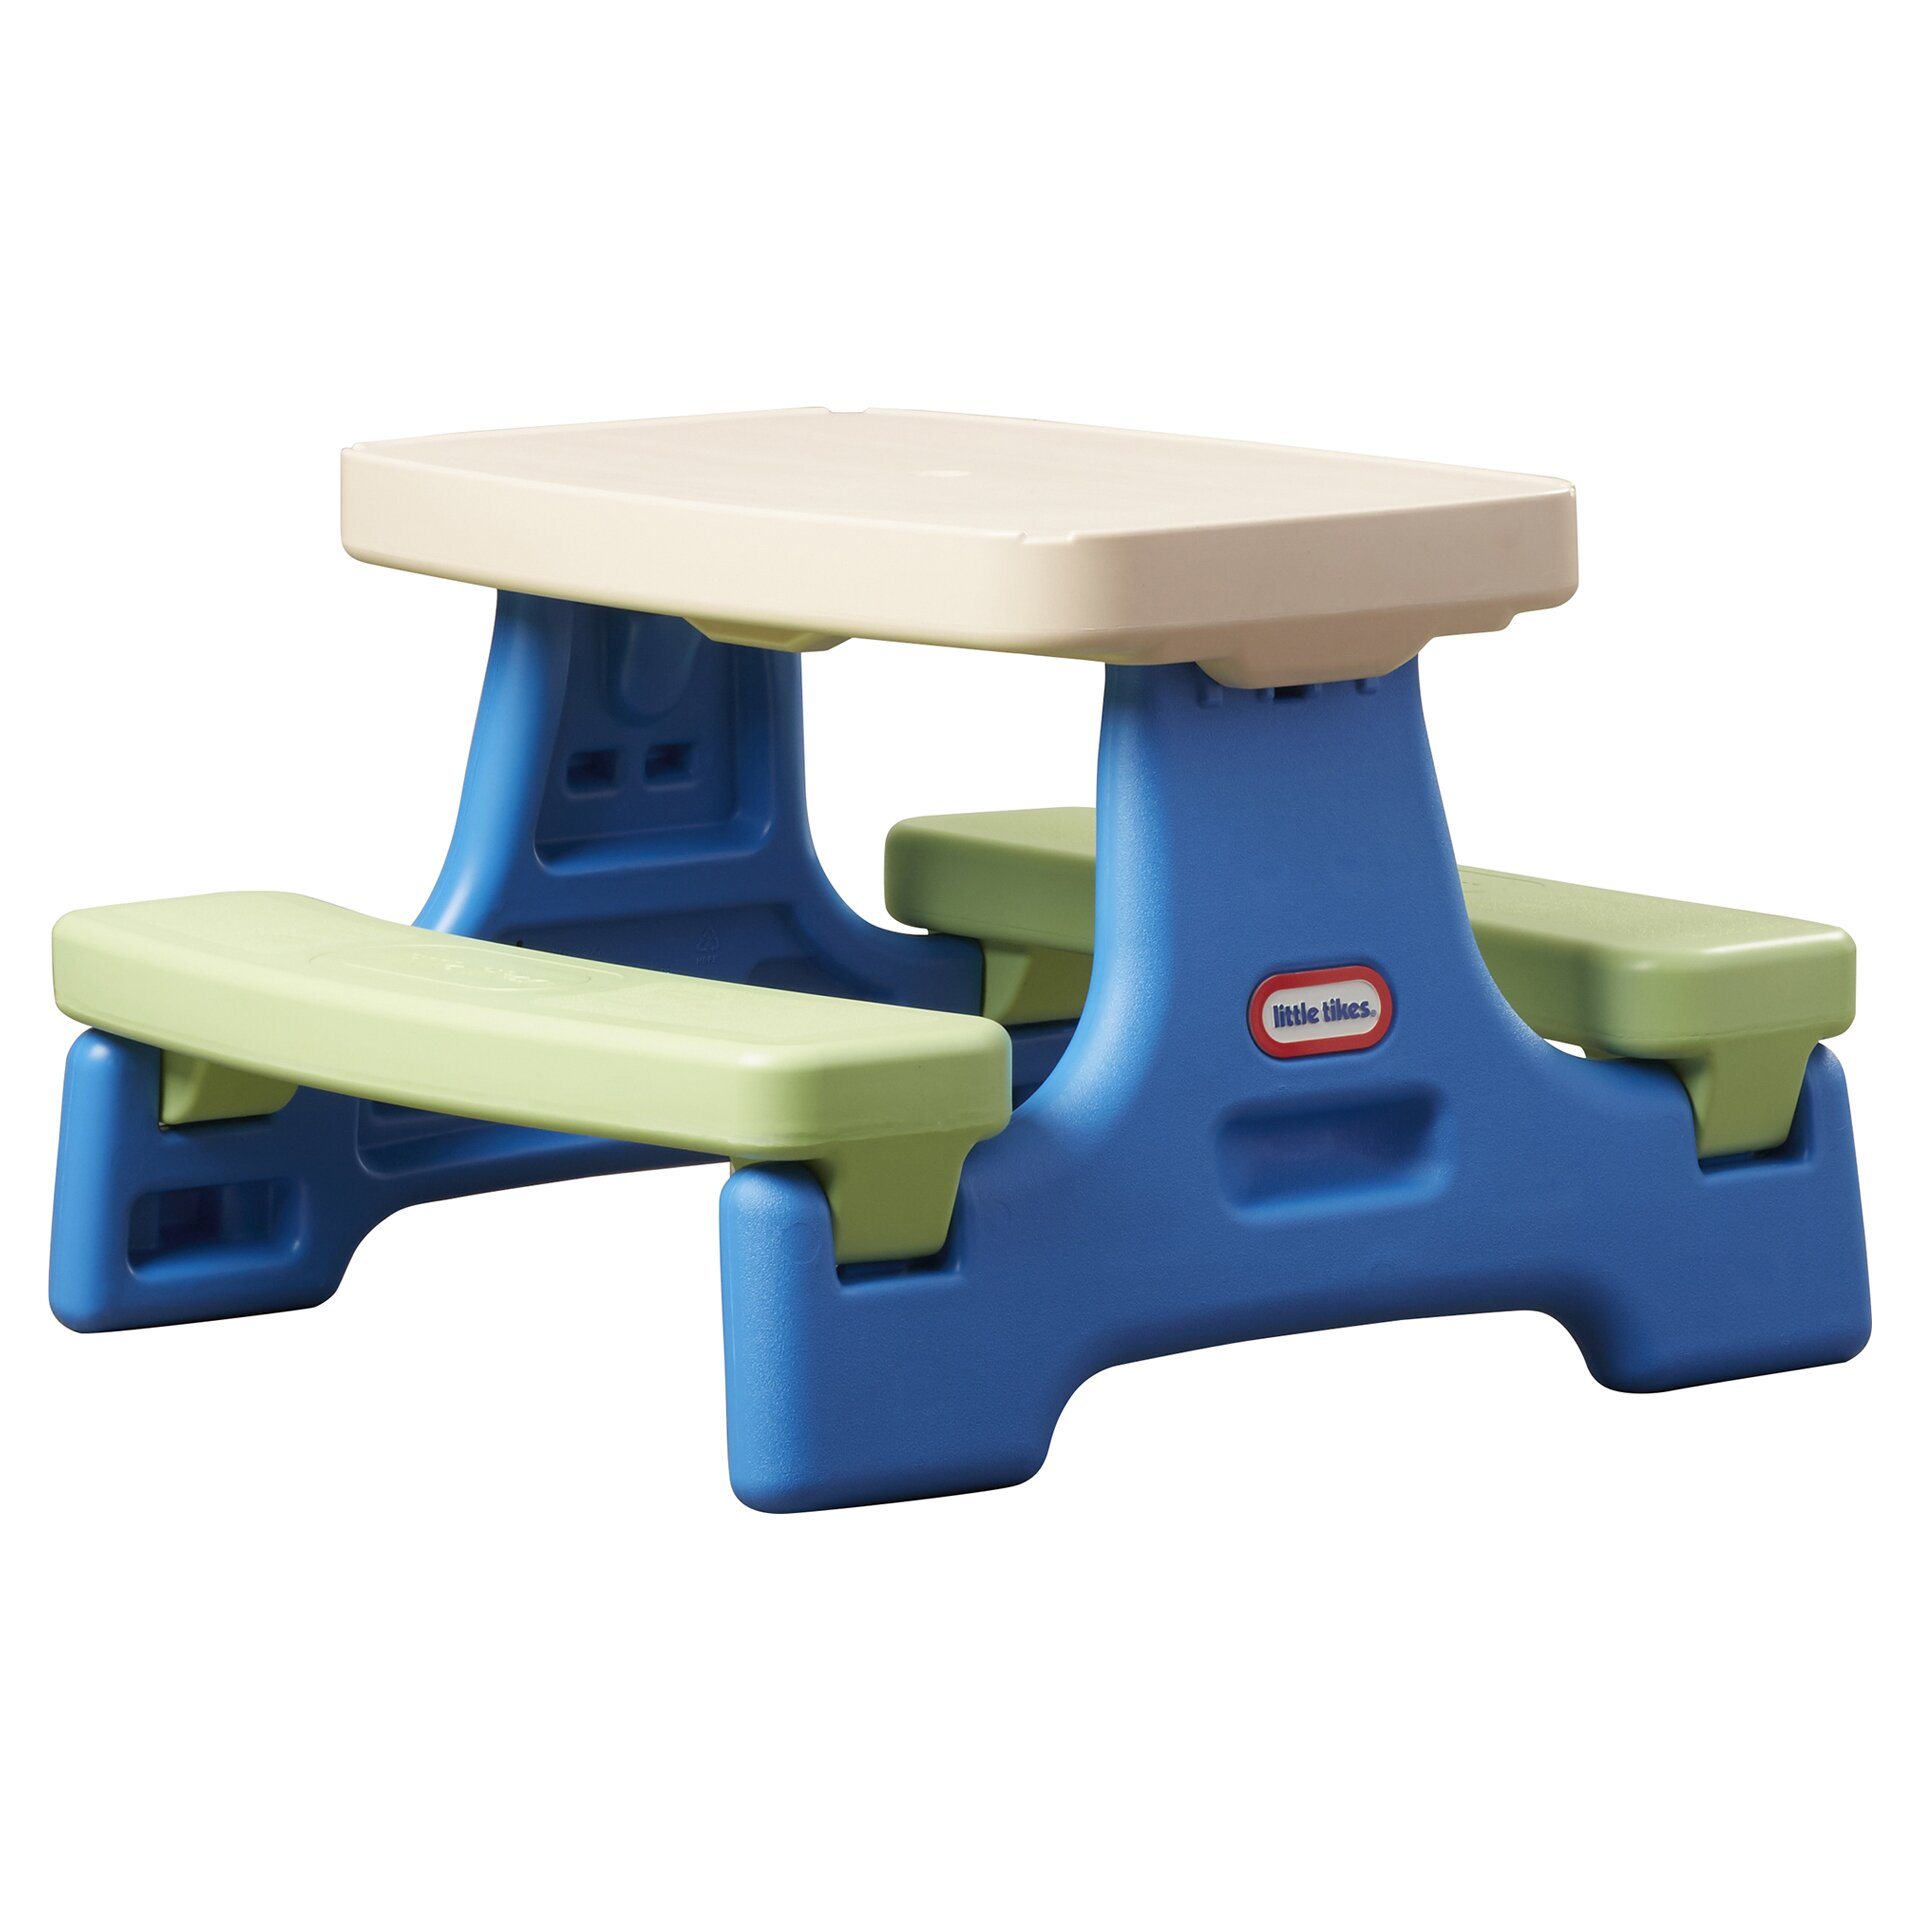 Little Tikes Easy Store Jr Play Table amp Reviews Wayfair : Little Tikes Easy Store Jr Play Table from www.wayfair.com size 1920 x 1920 jpeg 245kB